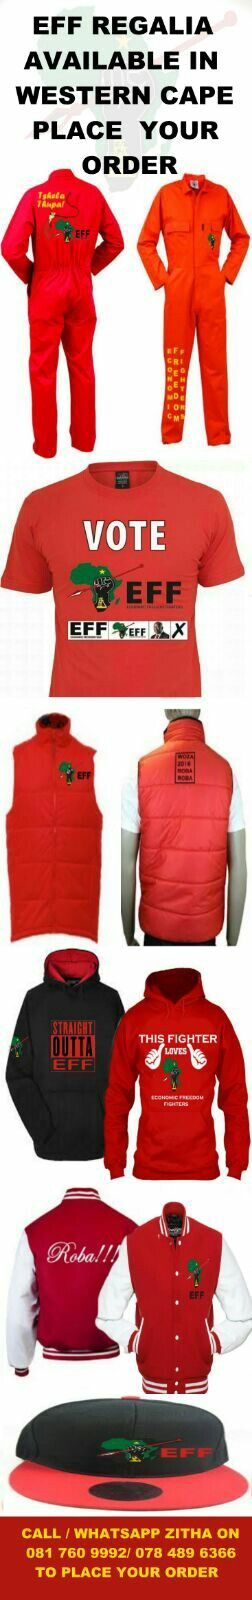 EFF Regalia available. Place your order! Western Cape Only